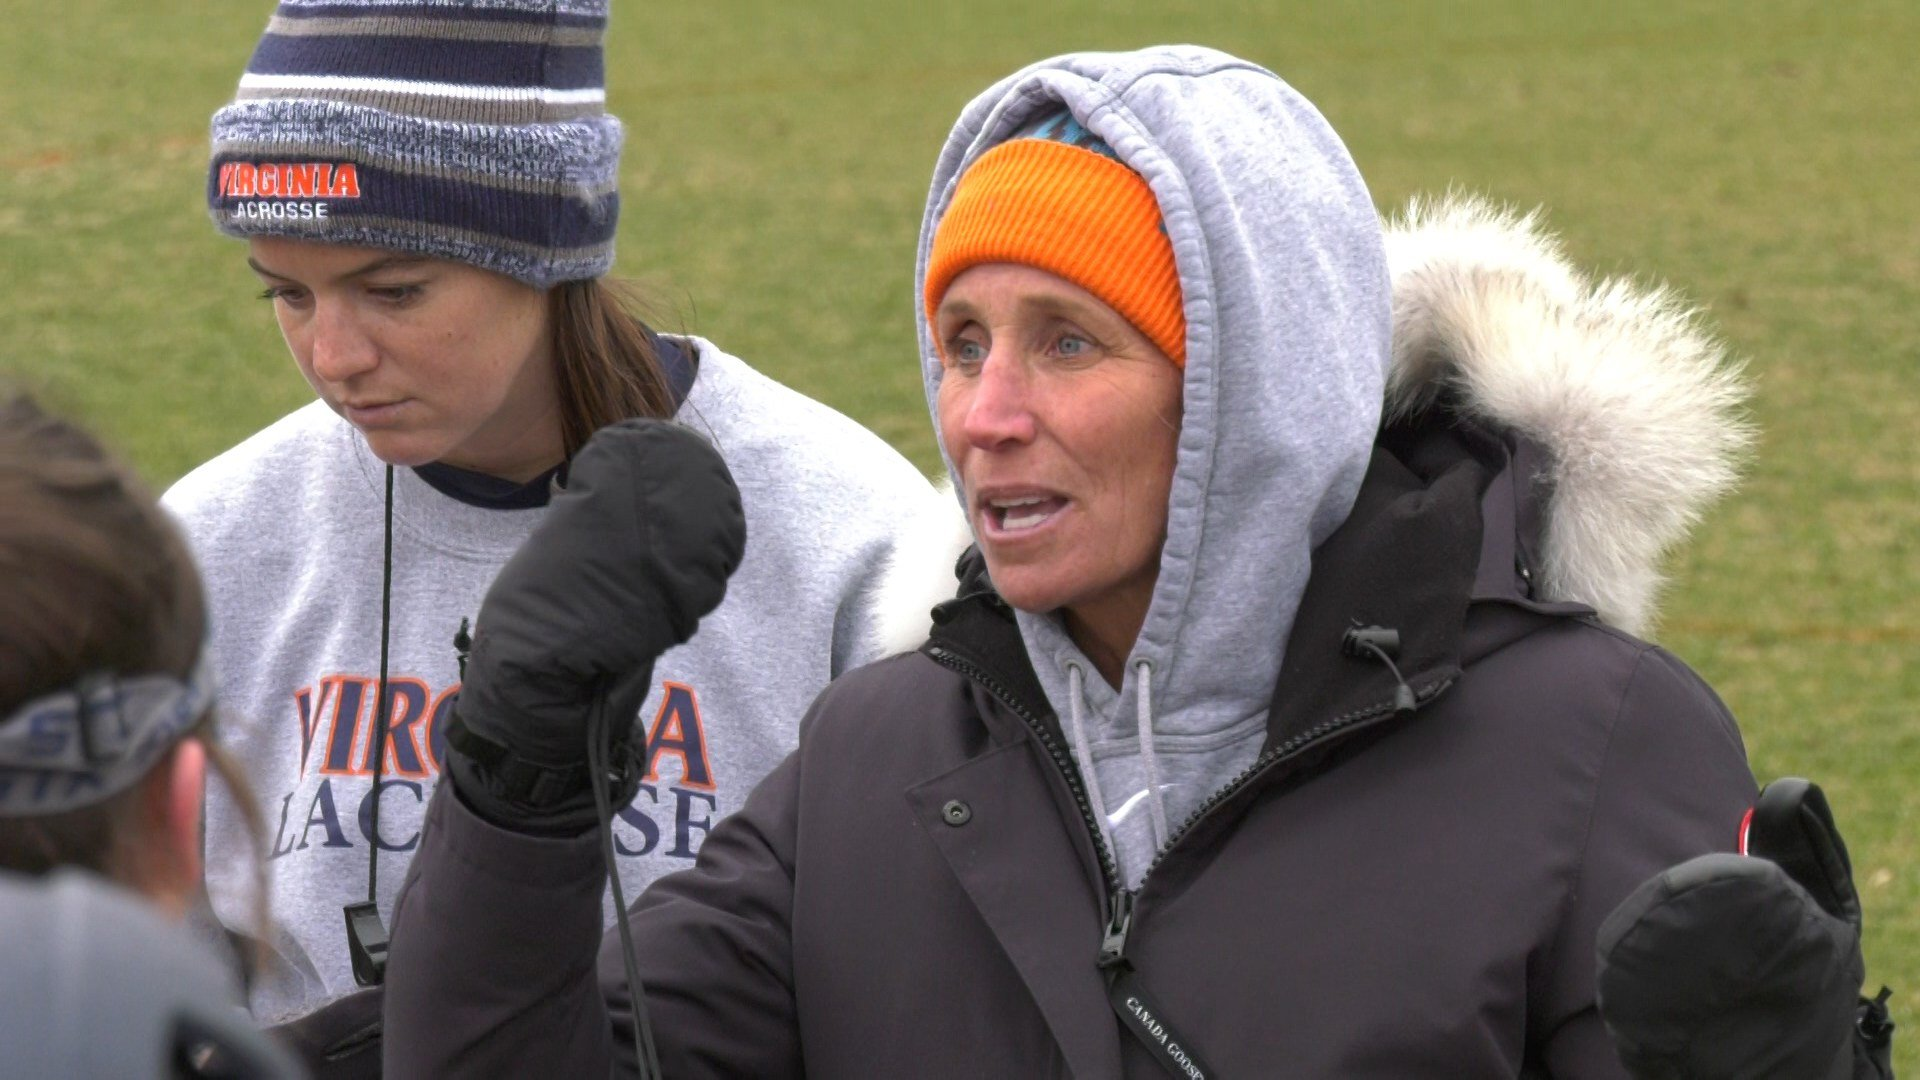 Head coach Julie Myers is entering her 23rd season at UVA